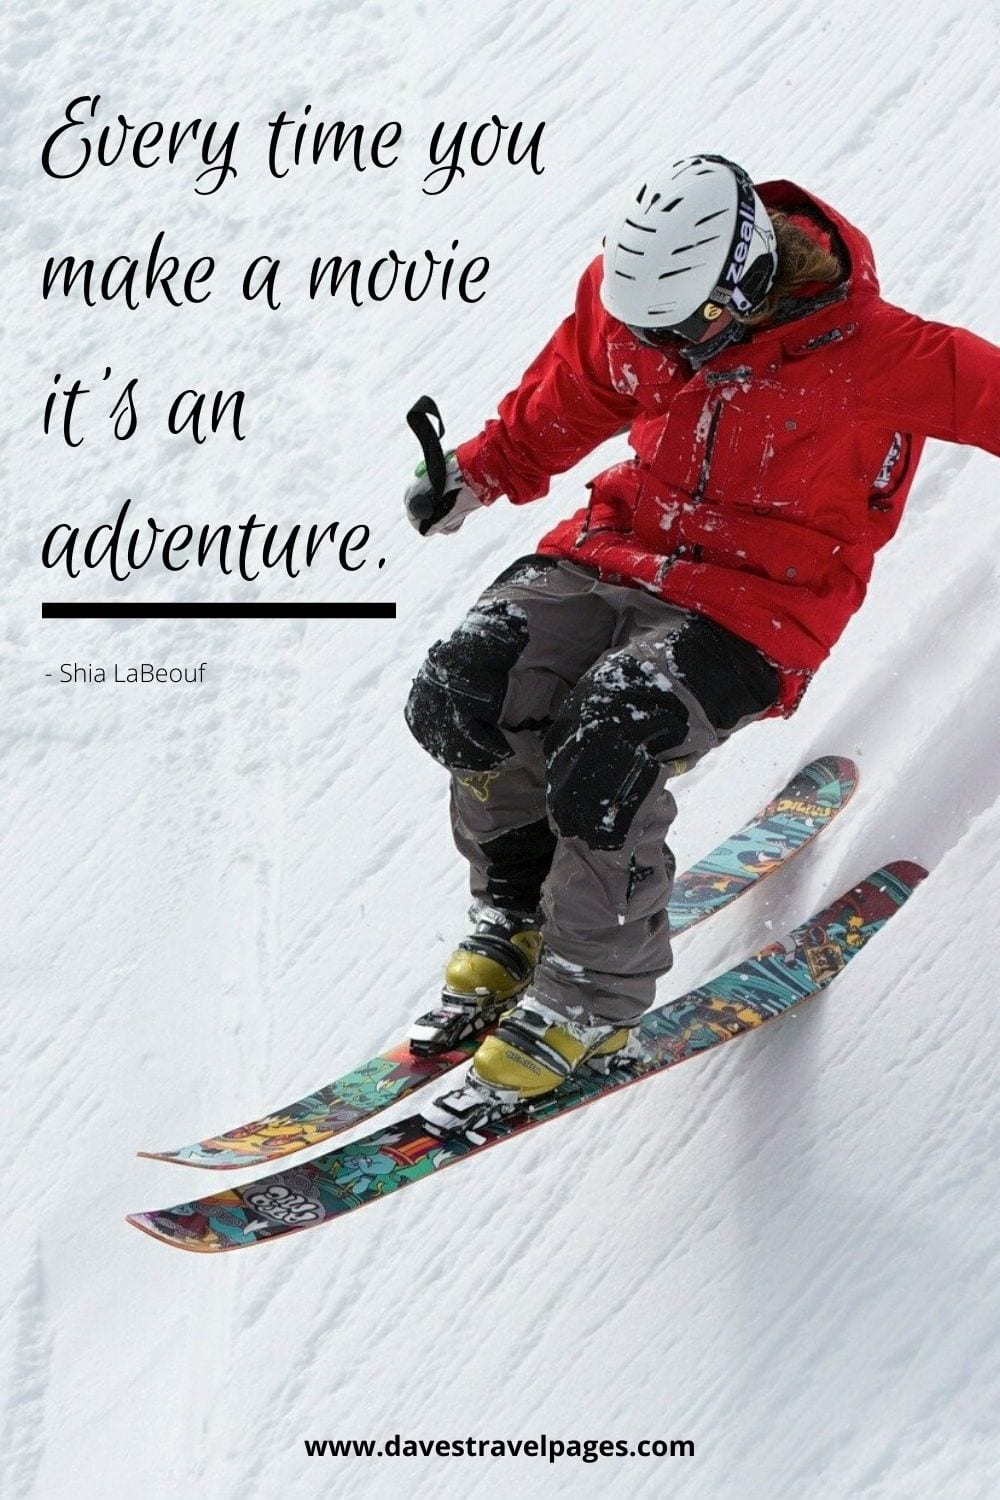 Every time you make a movie it's an adventure. Shia LaBeouf